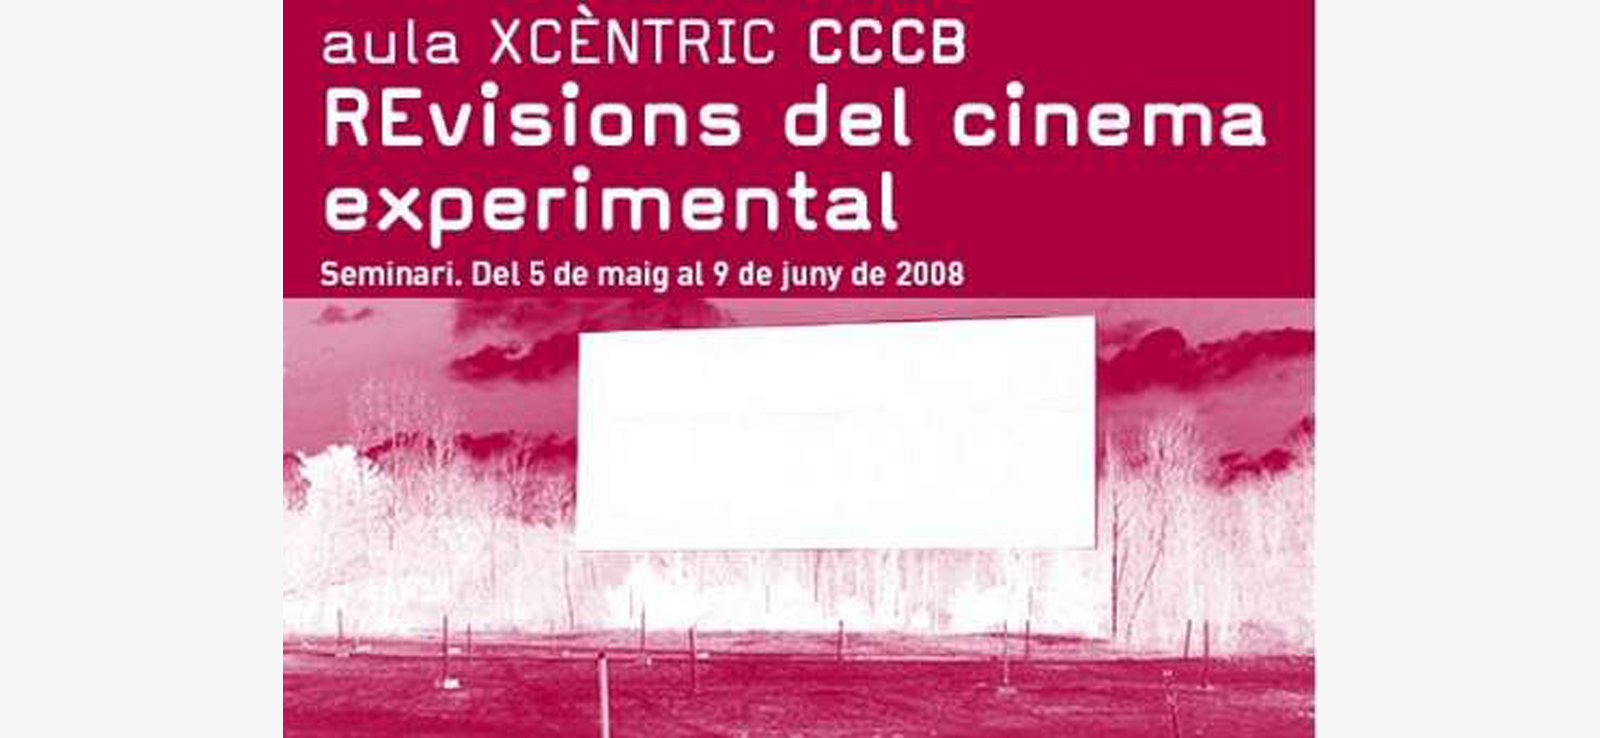 Antoni-Pinent-curator-Cinema-Invisible-Xcentric's-Section-cccb-revisions-del-cinema-experimental